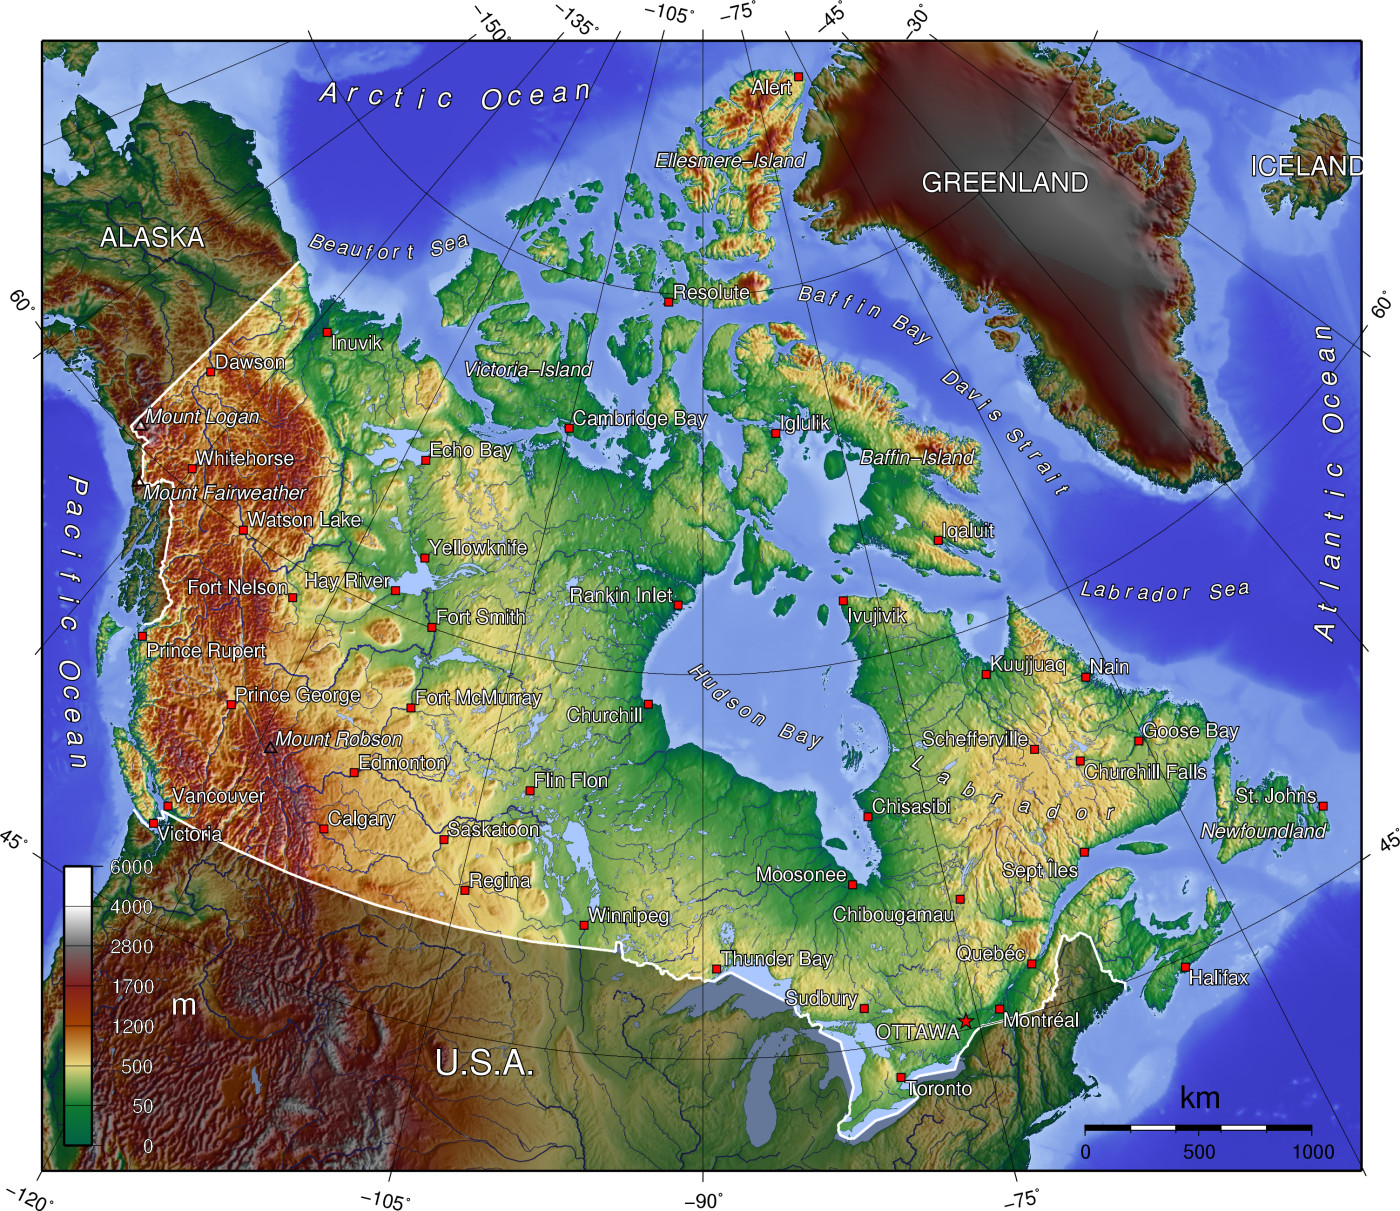 FileCanada Topojpg Wikimedia Commons - Relief map of canada